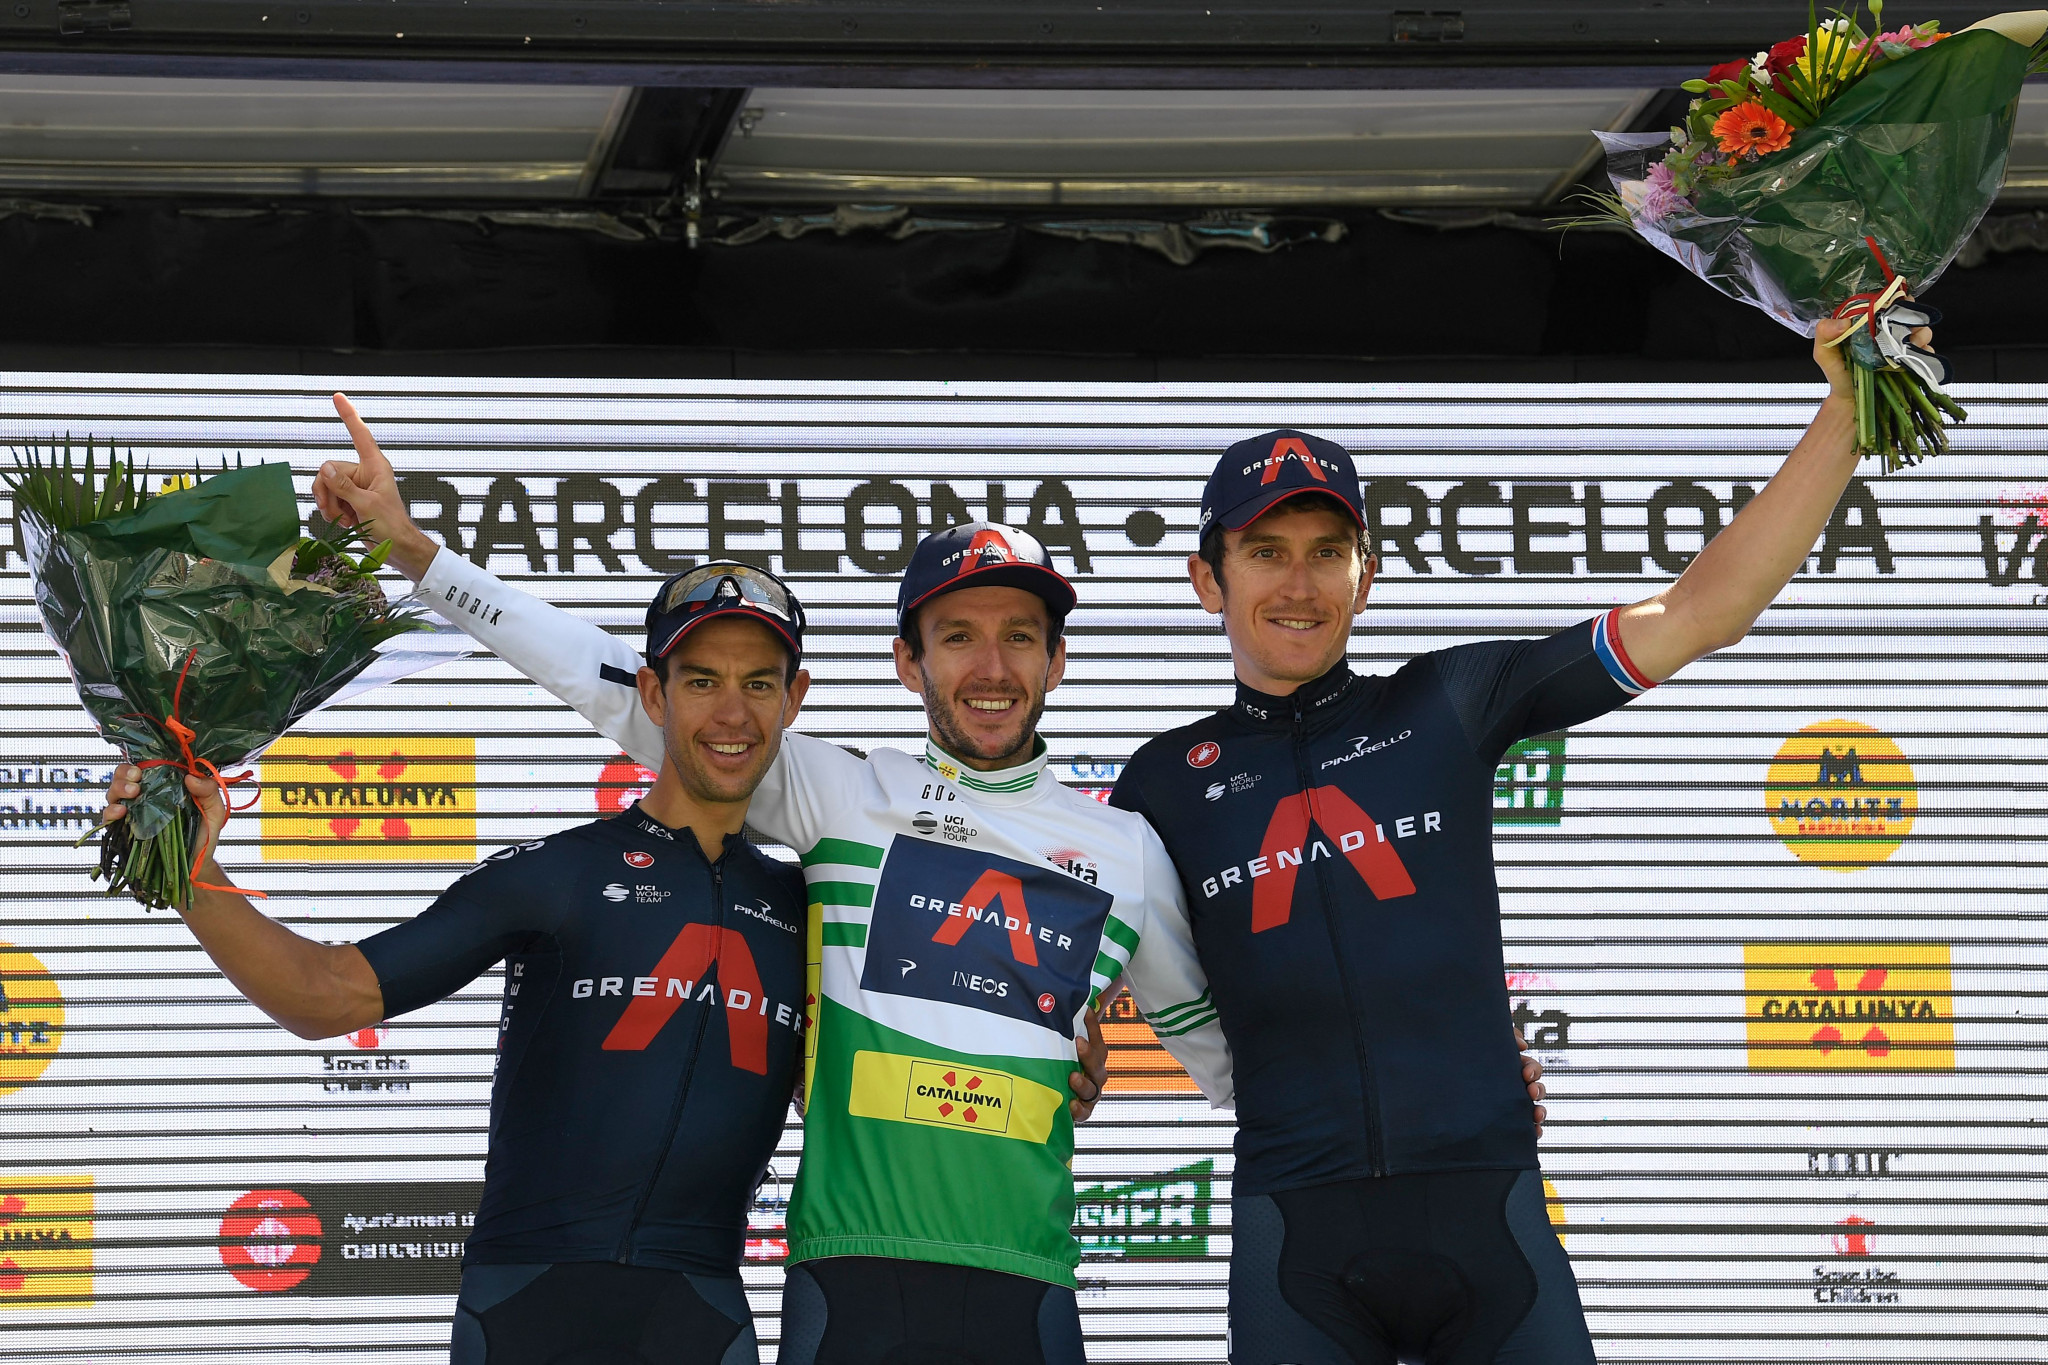 Yates leads Ineos Grenadiers podium sweep at Volta a Catalunya as De Gendt claims final stage